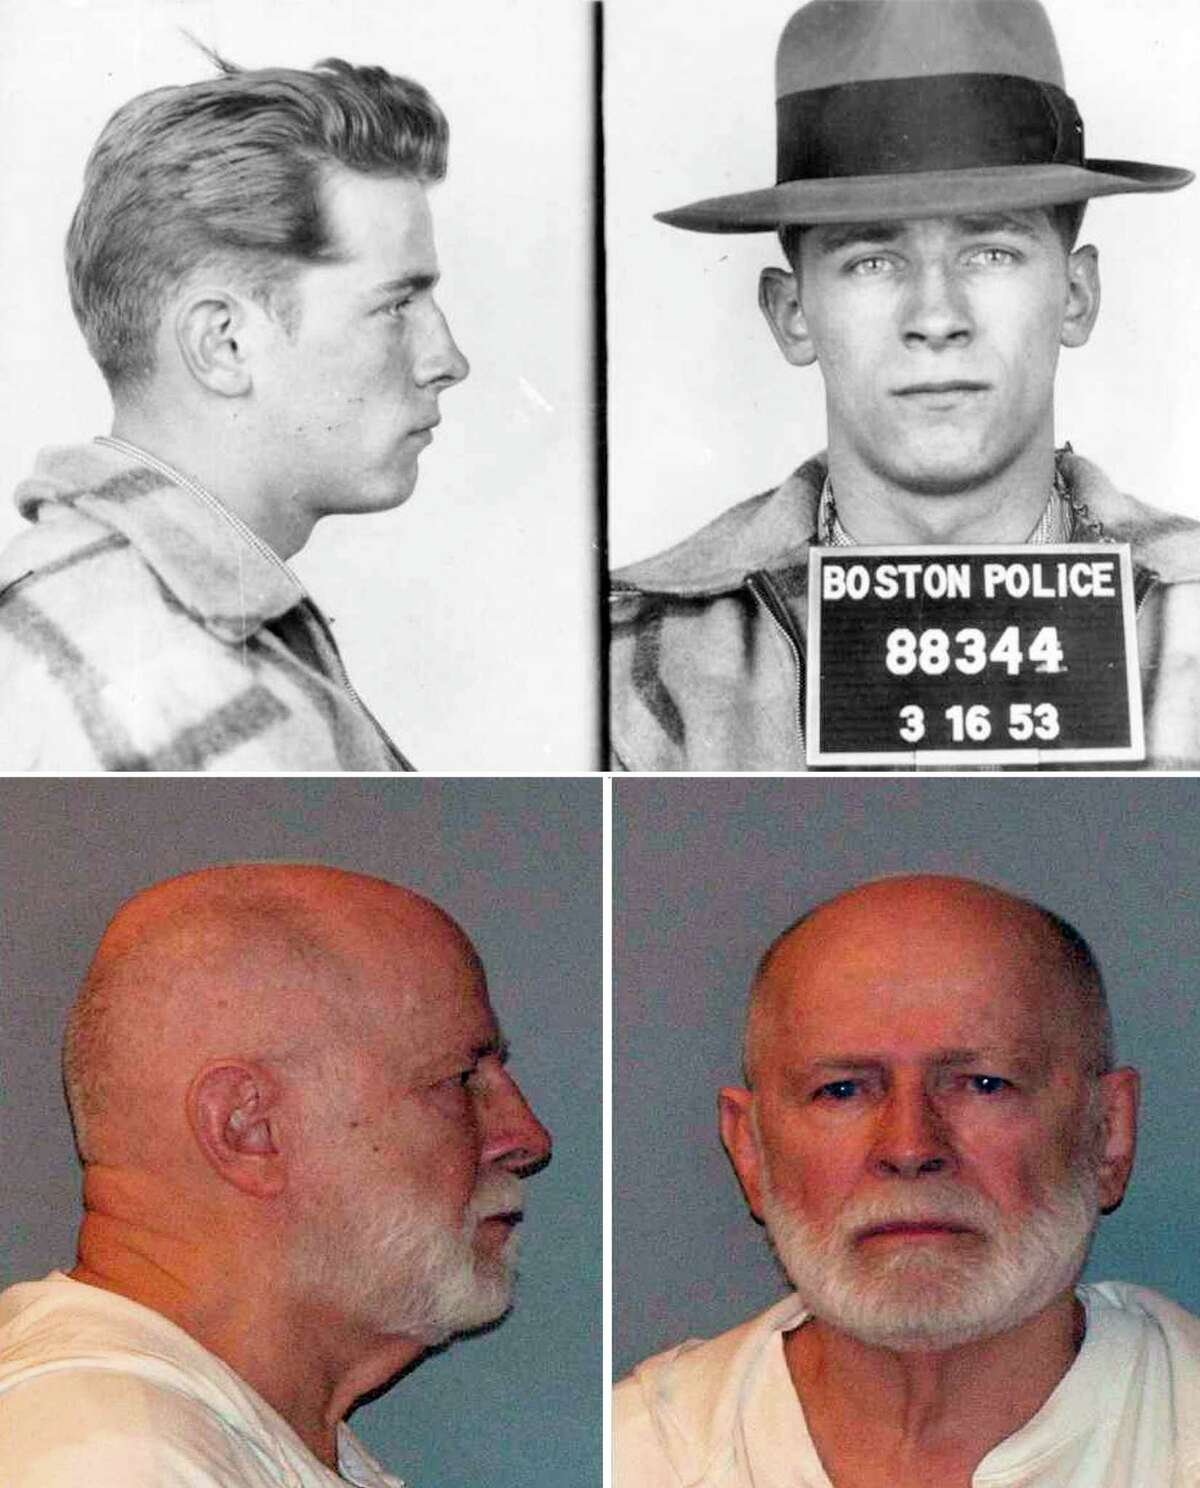 FILE -- Bulger, the mobster who terrorized South Boston in the 1970s and '80s while he led the notorious Winter Hill Gang, was found guilty on Monday. Aug. 12, 2013, of a sweeping array of gangland crimes, including 11 murders. Bulger, now 83, faces life in prison. (Boston Police, left, U.S. Marshal Service, bottom via The New York Times) ORG XMIT: NYT1